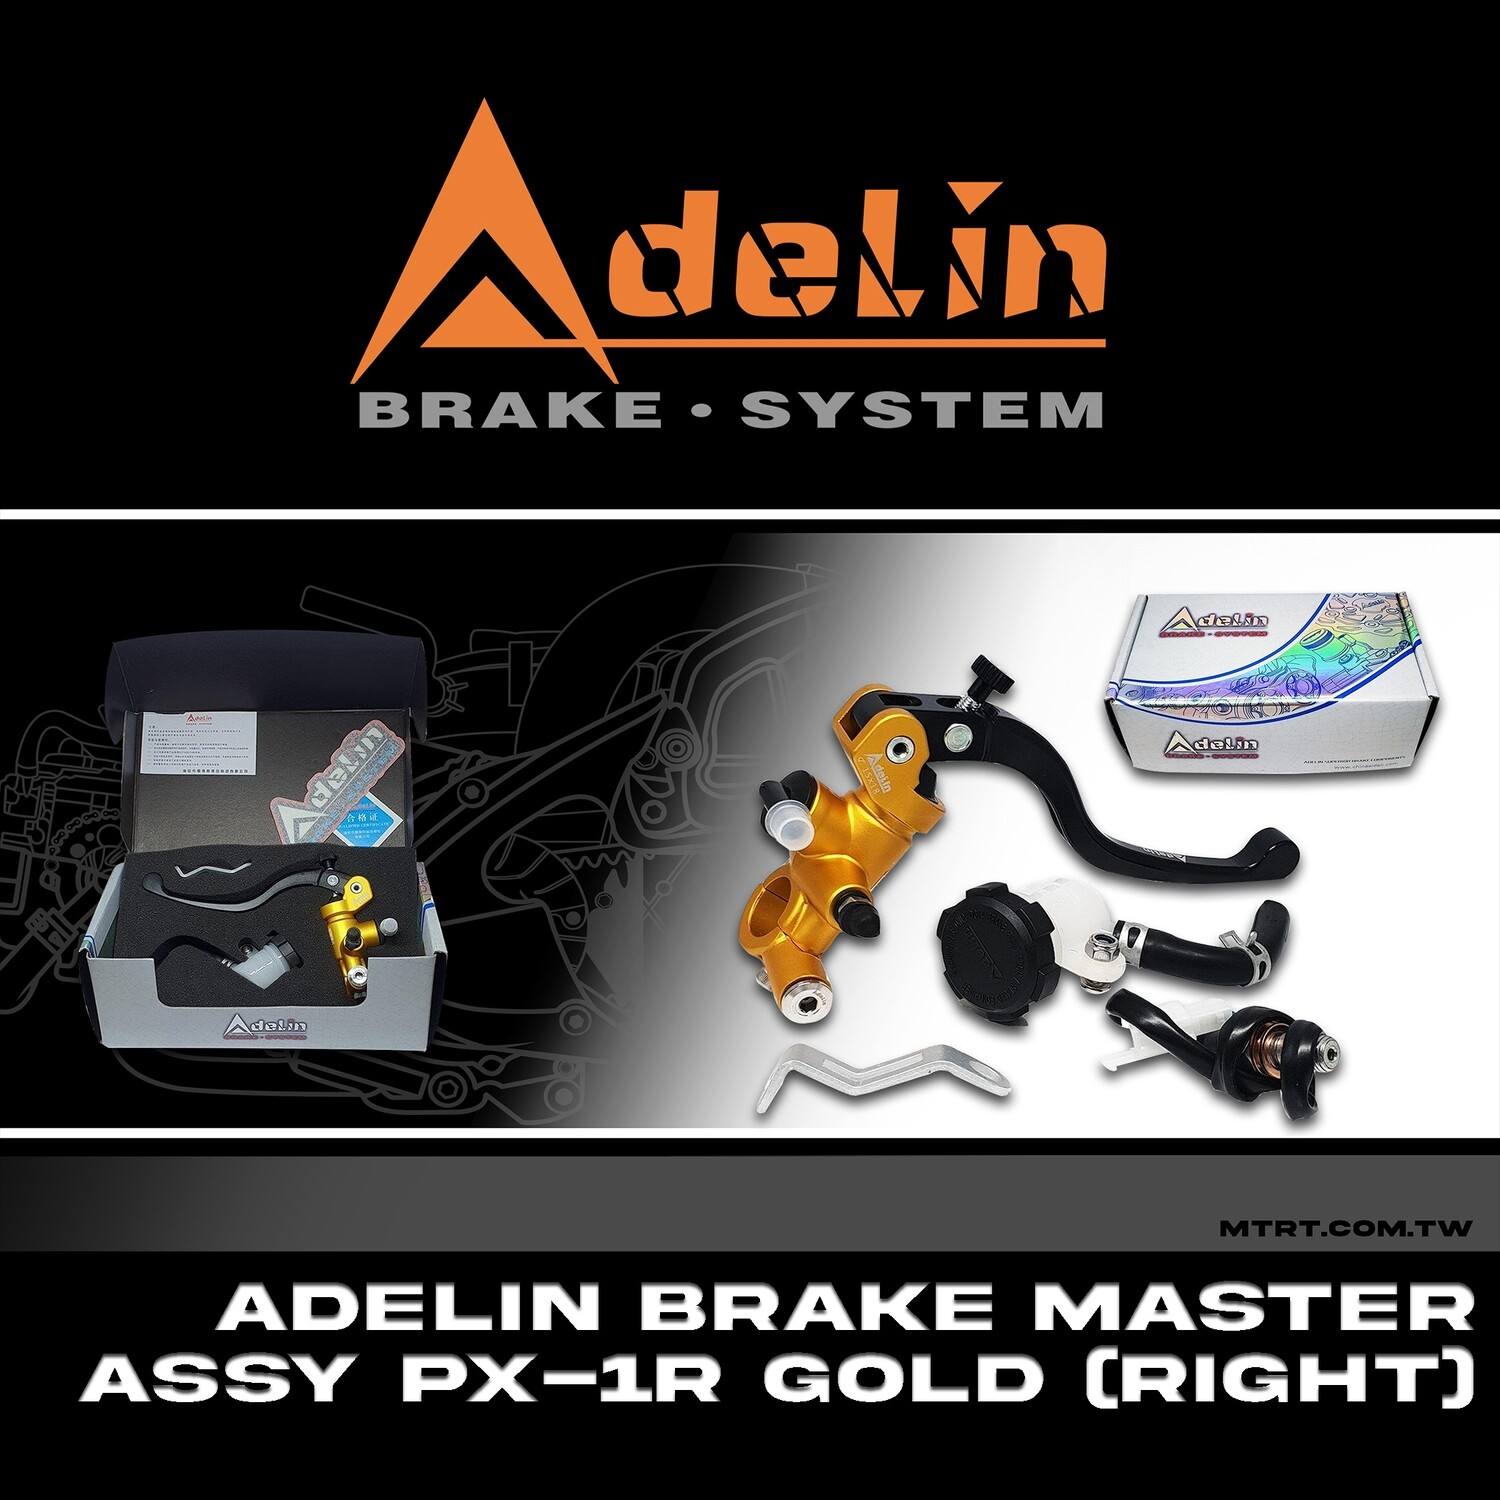 ADELIN BRAKE MASTER ASSY. PX-1R GOLD (RIGHT)